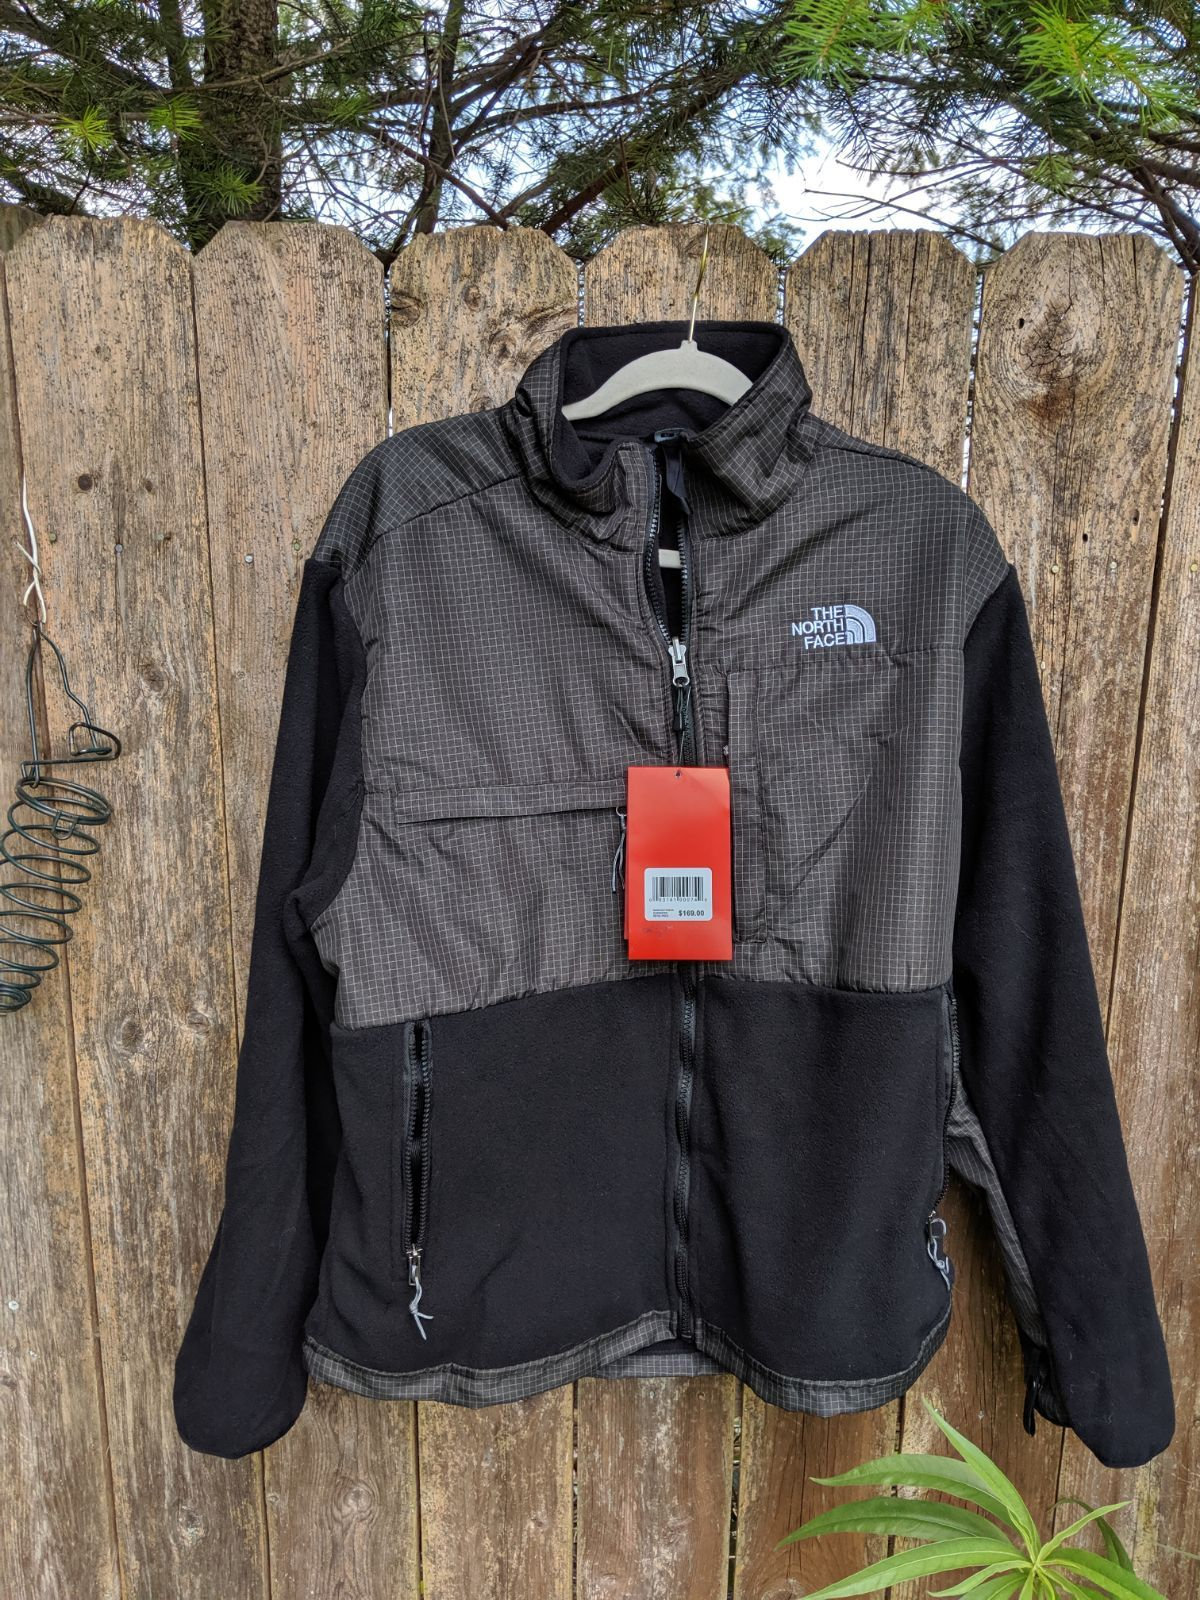 Hold New North Face Jacket On Mercari North Face Fleece Jacket North Face Jacket North Face Coat [ 1600 x 1200 Pixel ]